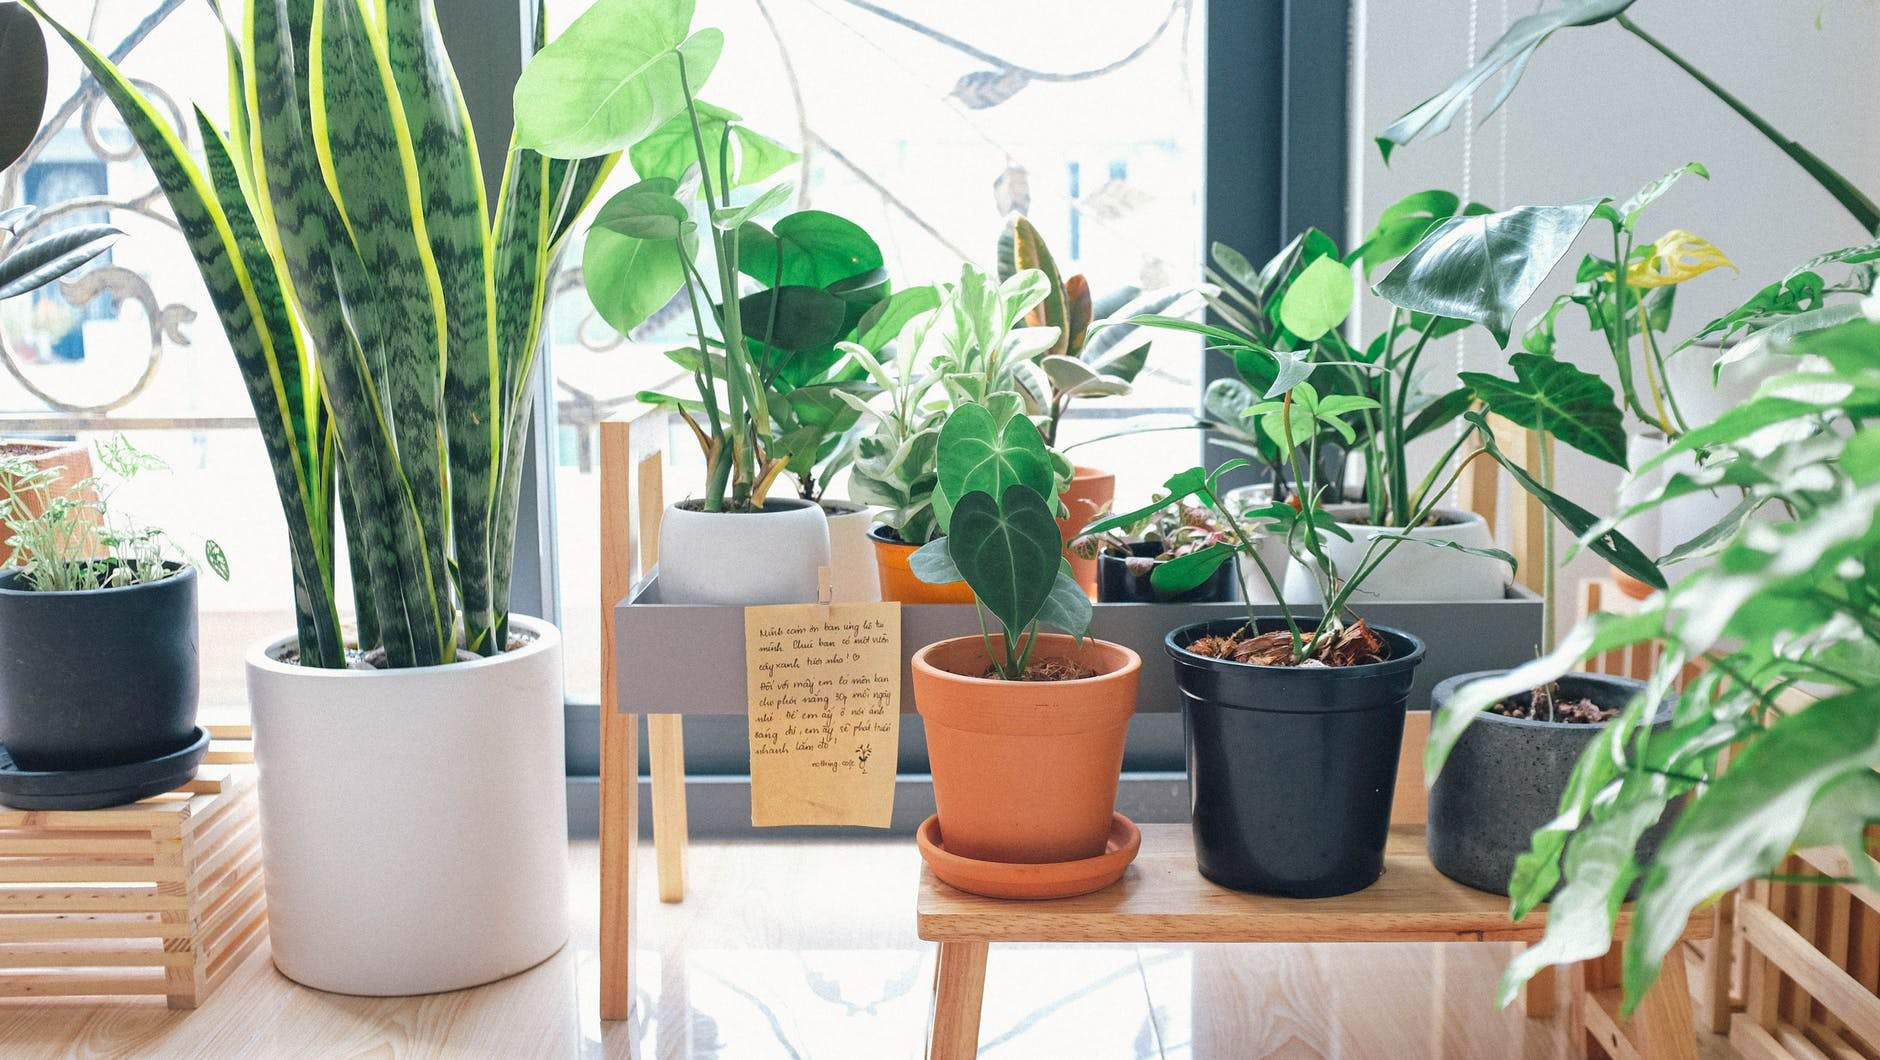 5 Common Houseplant Problems & How to Solve Them